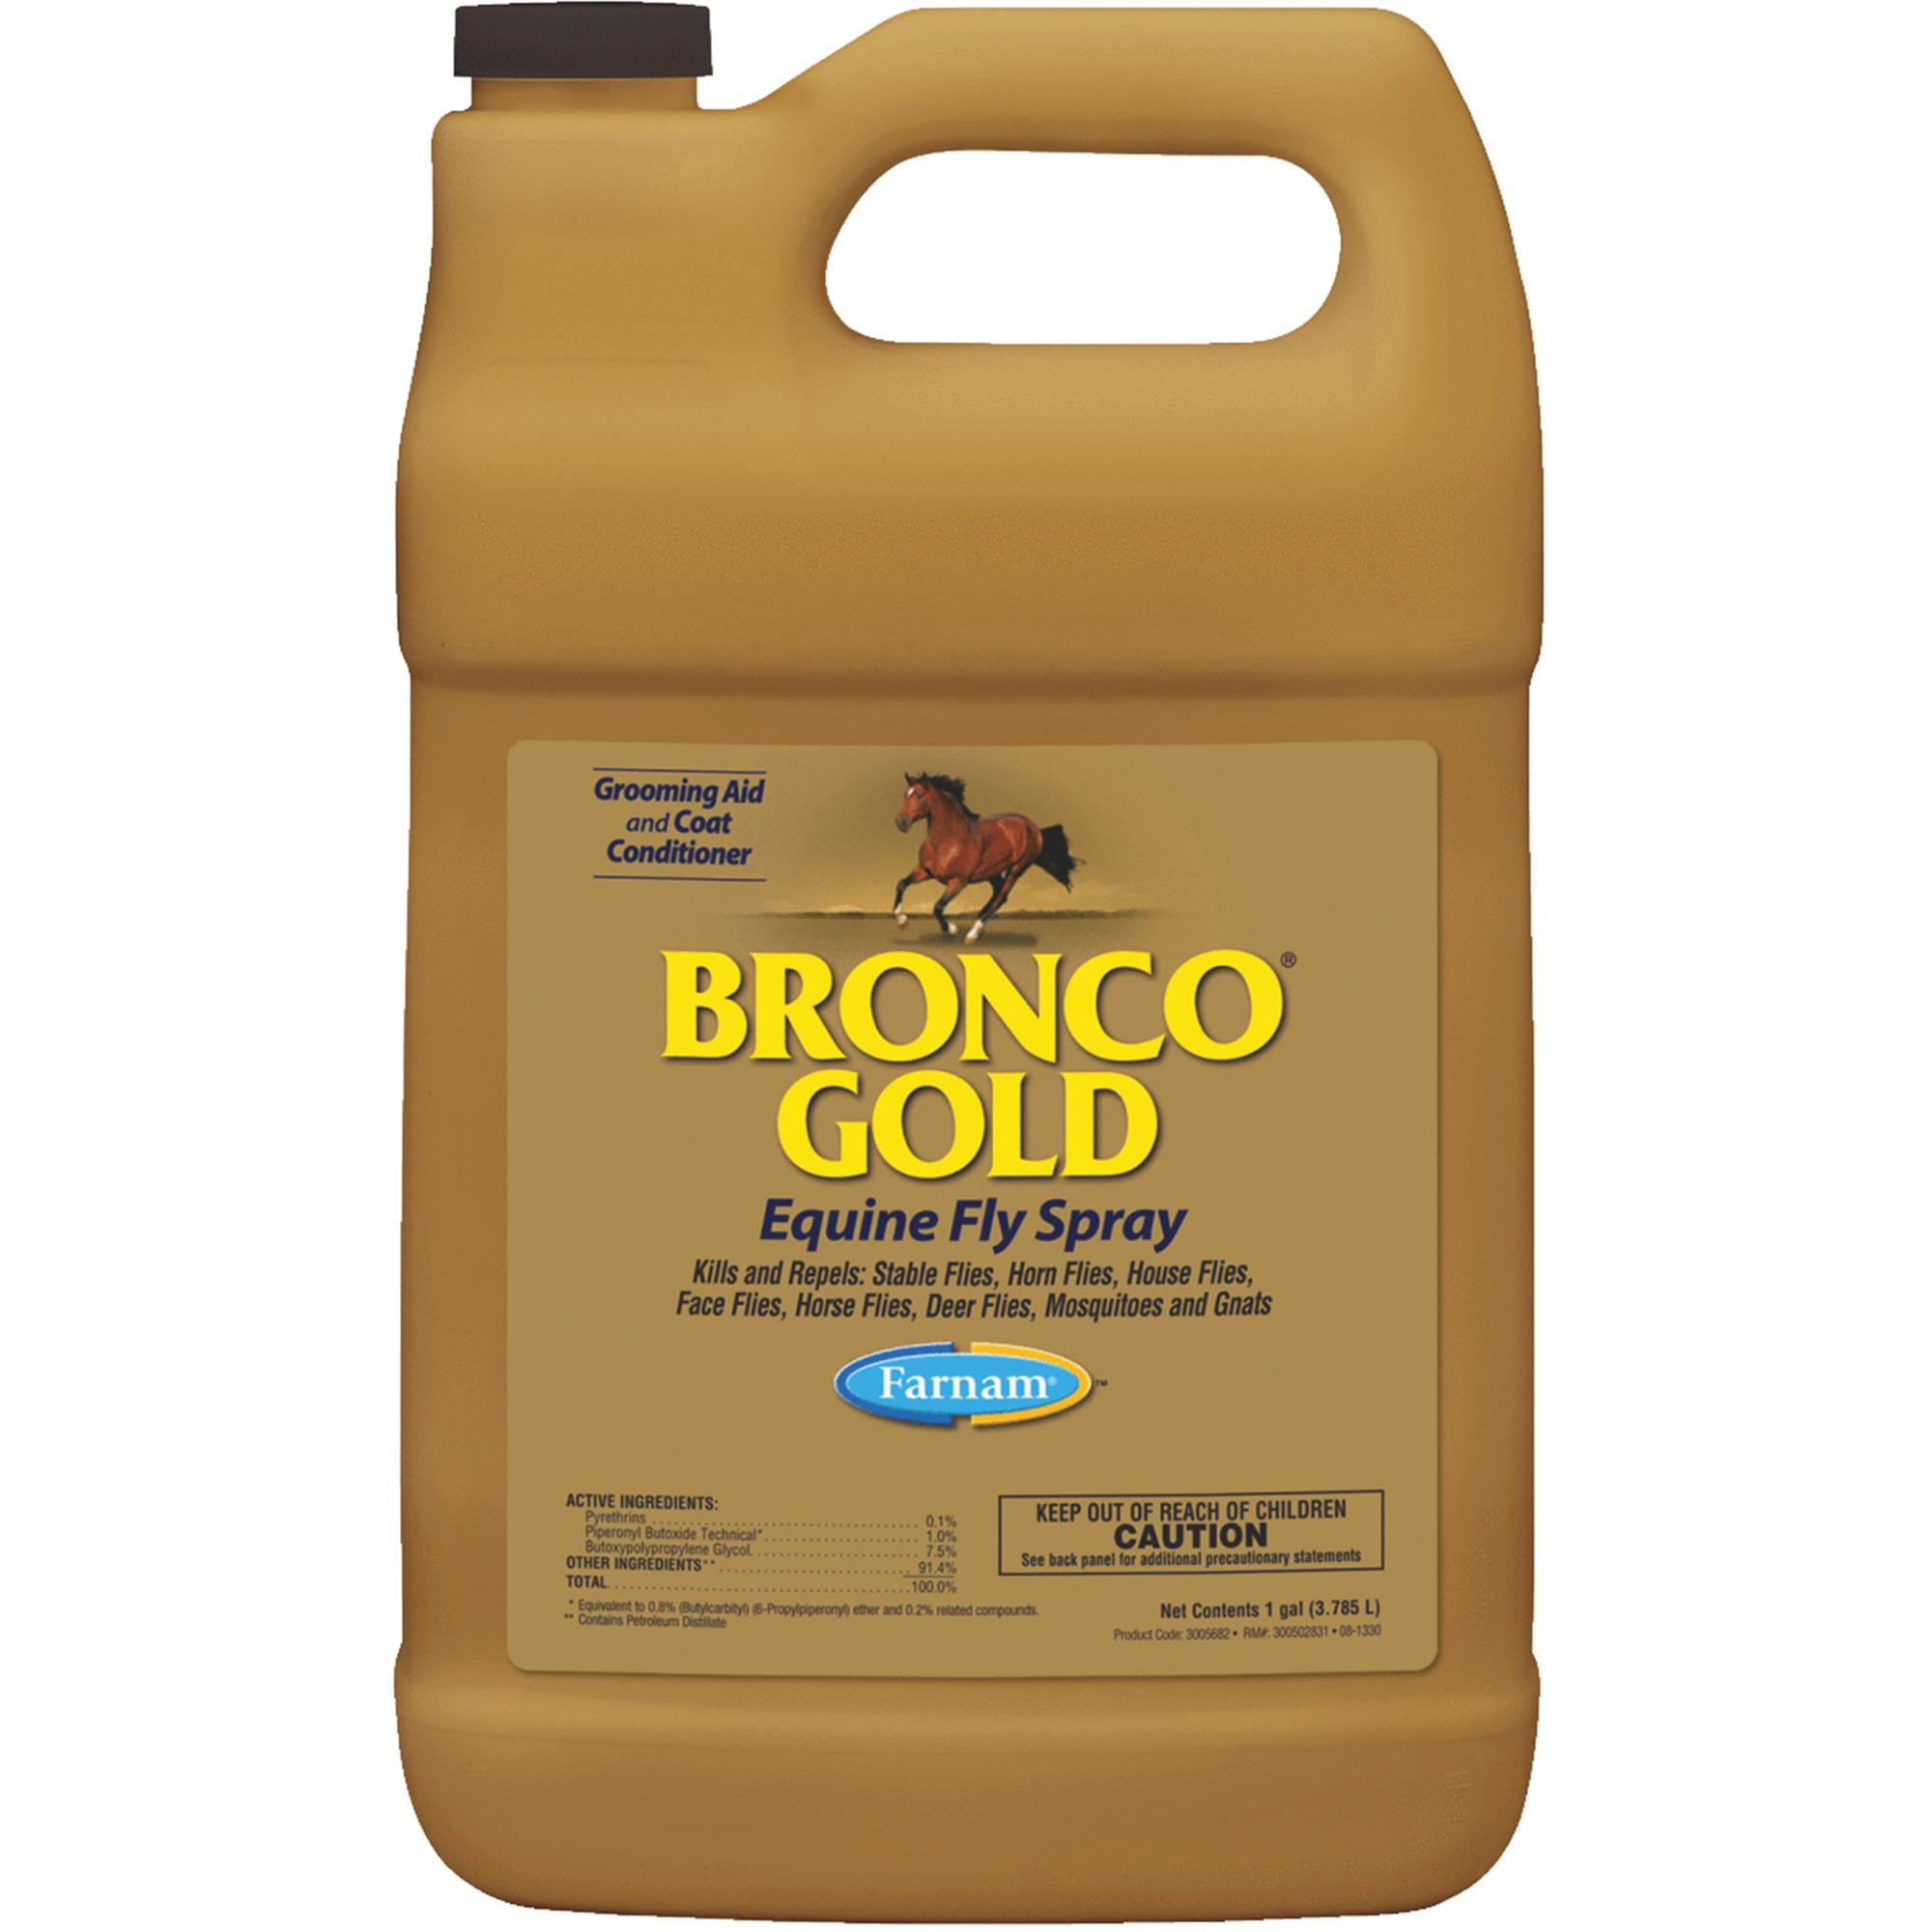 Farnam Bronco Gold Equine Fly Spray